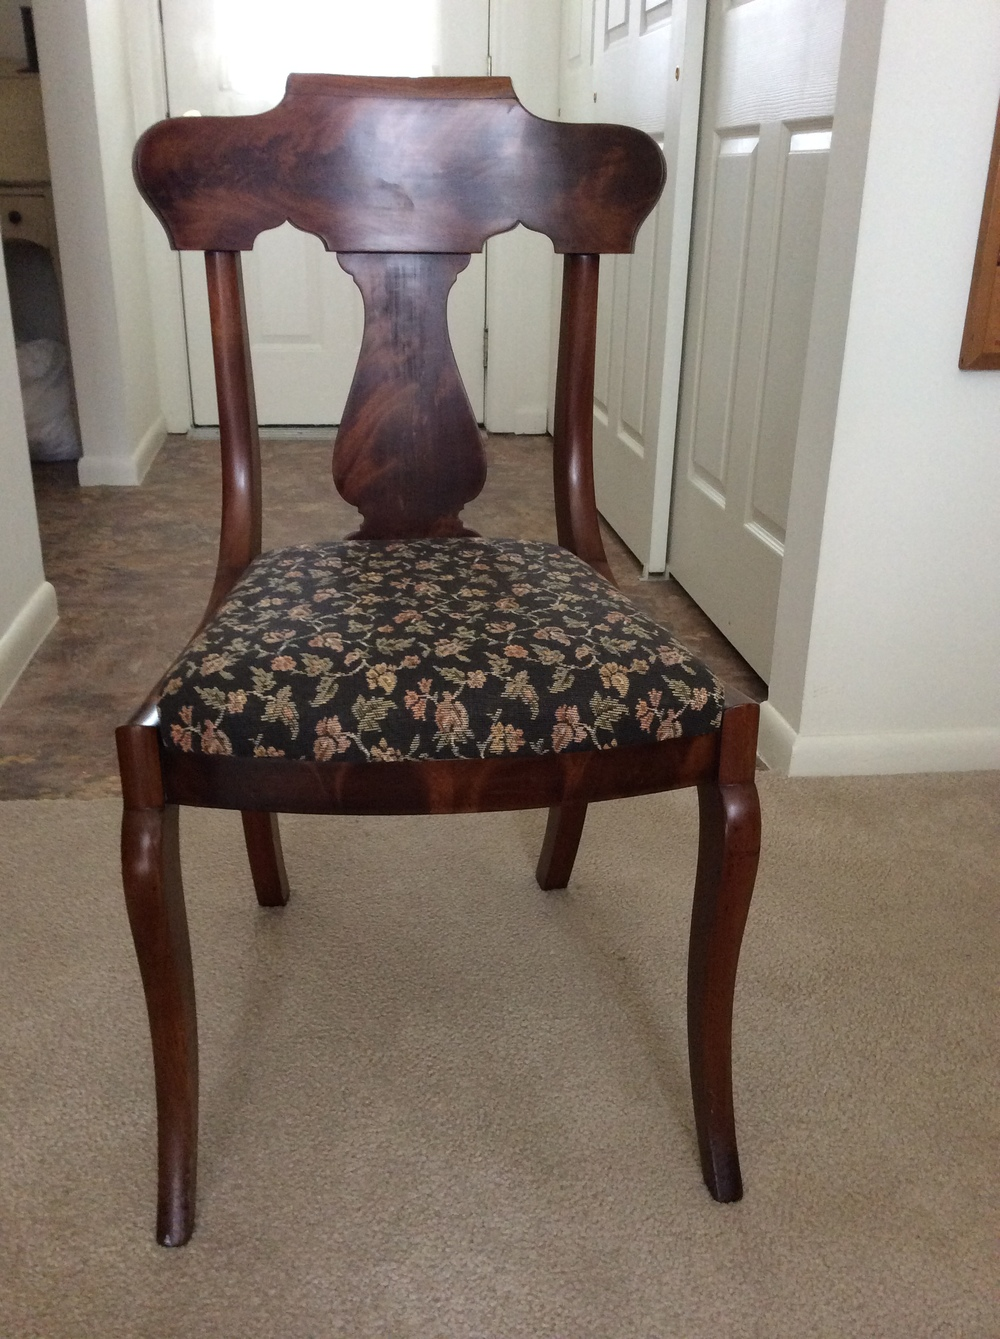 Empire sabre leg dining chair,  mahogany veneer.  $125 estimated value